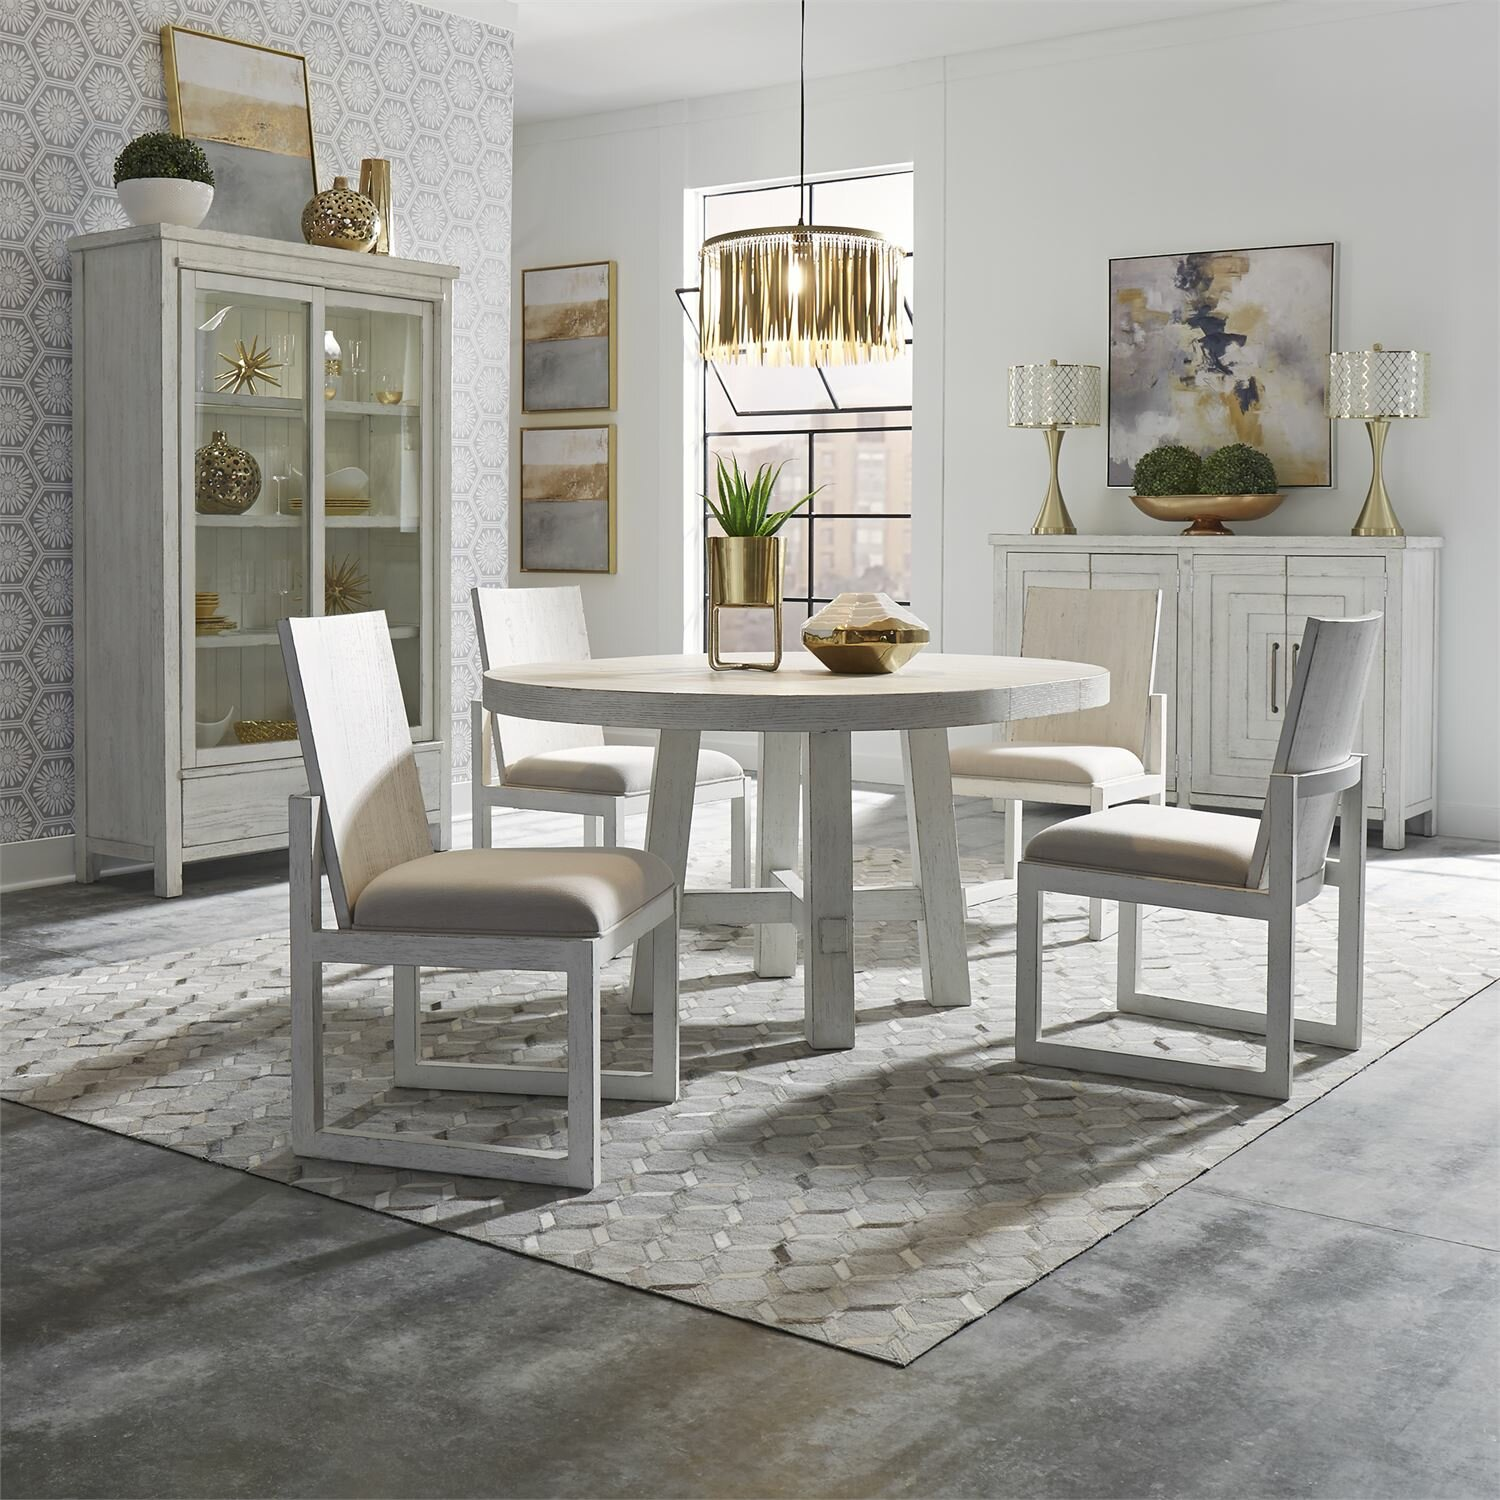 Theres Round 5 Piece Extendable Dining Set Birch Lane